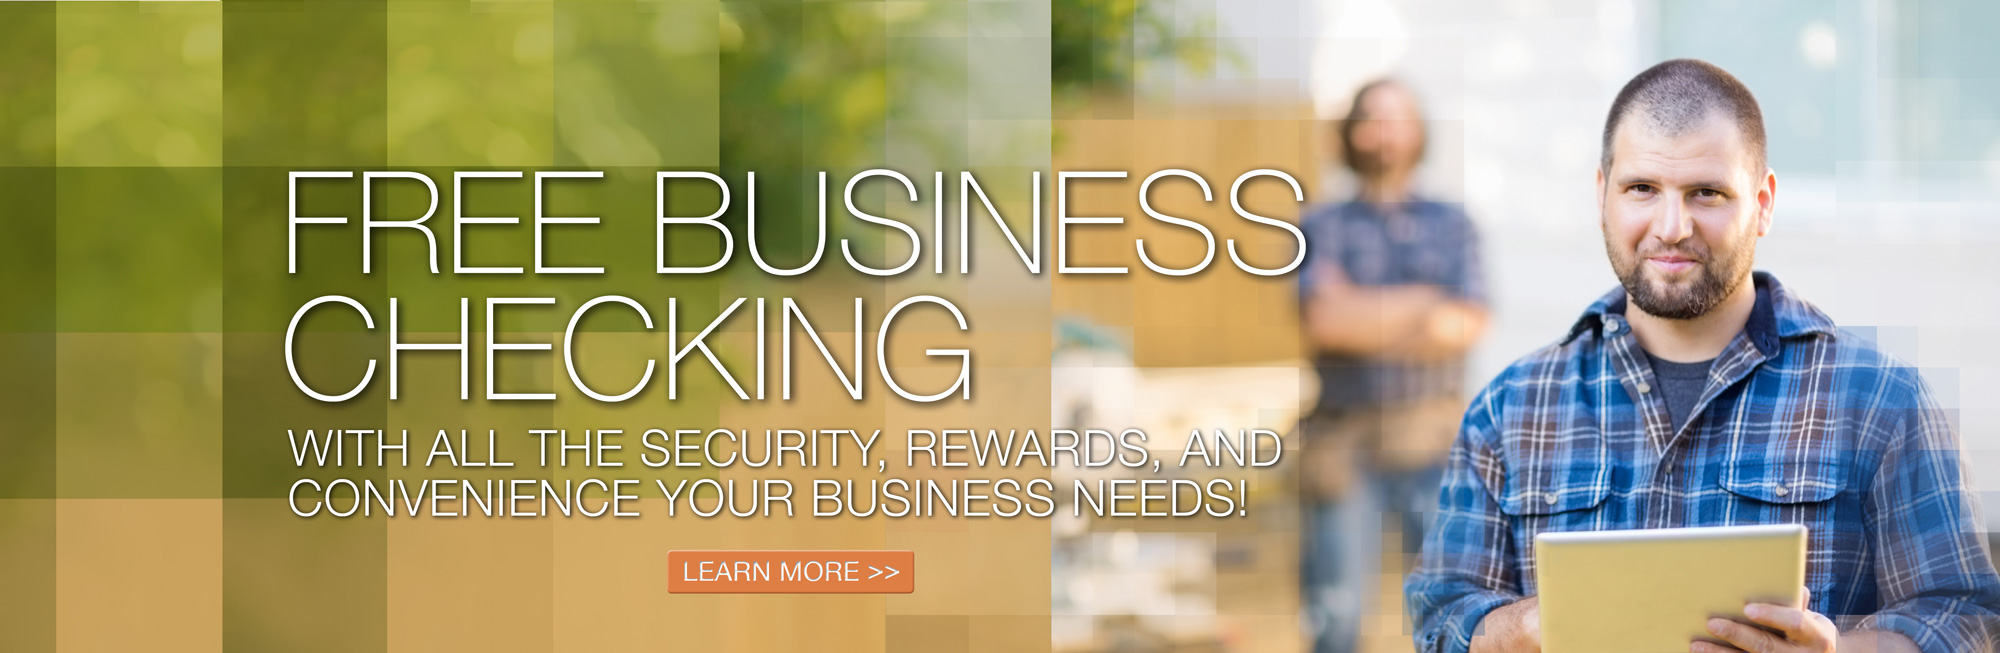 Free Business Checking with all the security, rewards and convenience you need. Click to learn more.